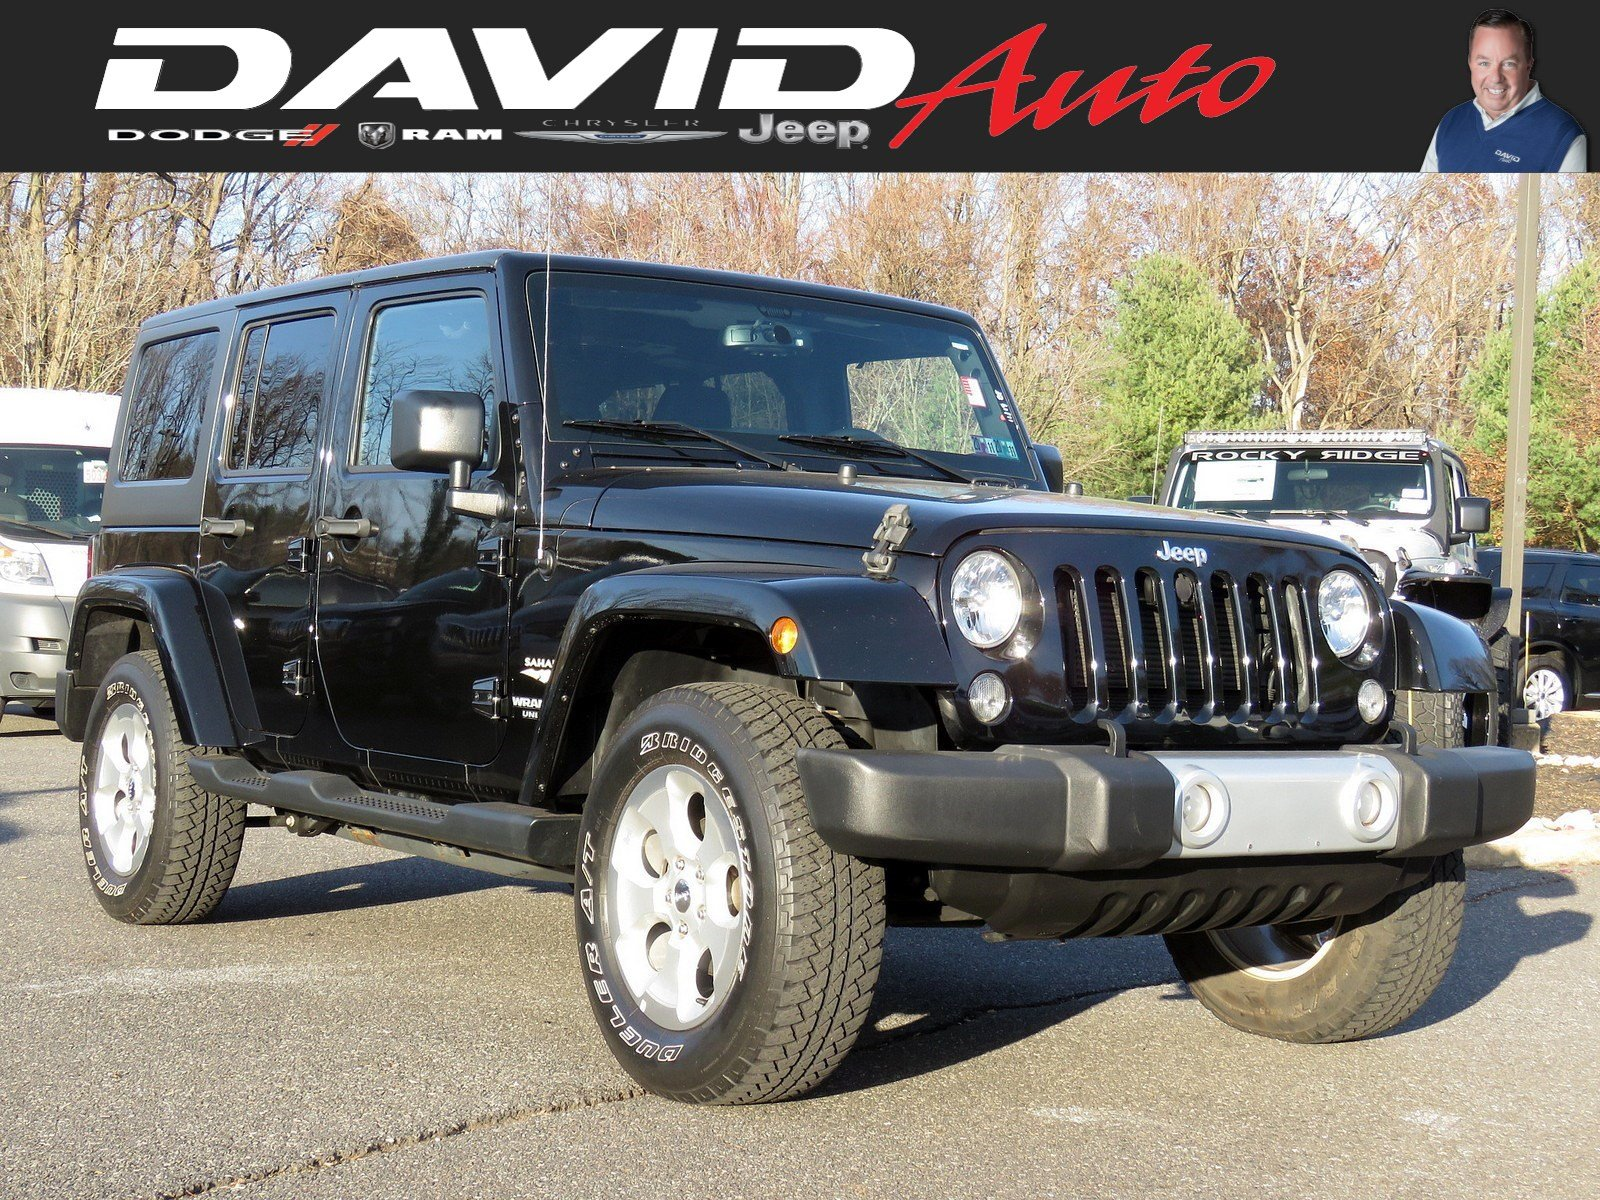 Certified Pre-Owned 2015 Jeep Wrangler Unlimited Sahara